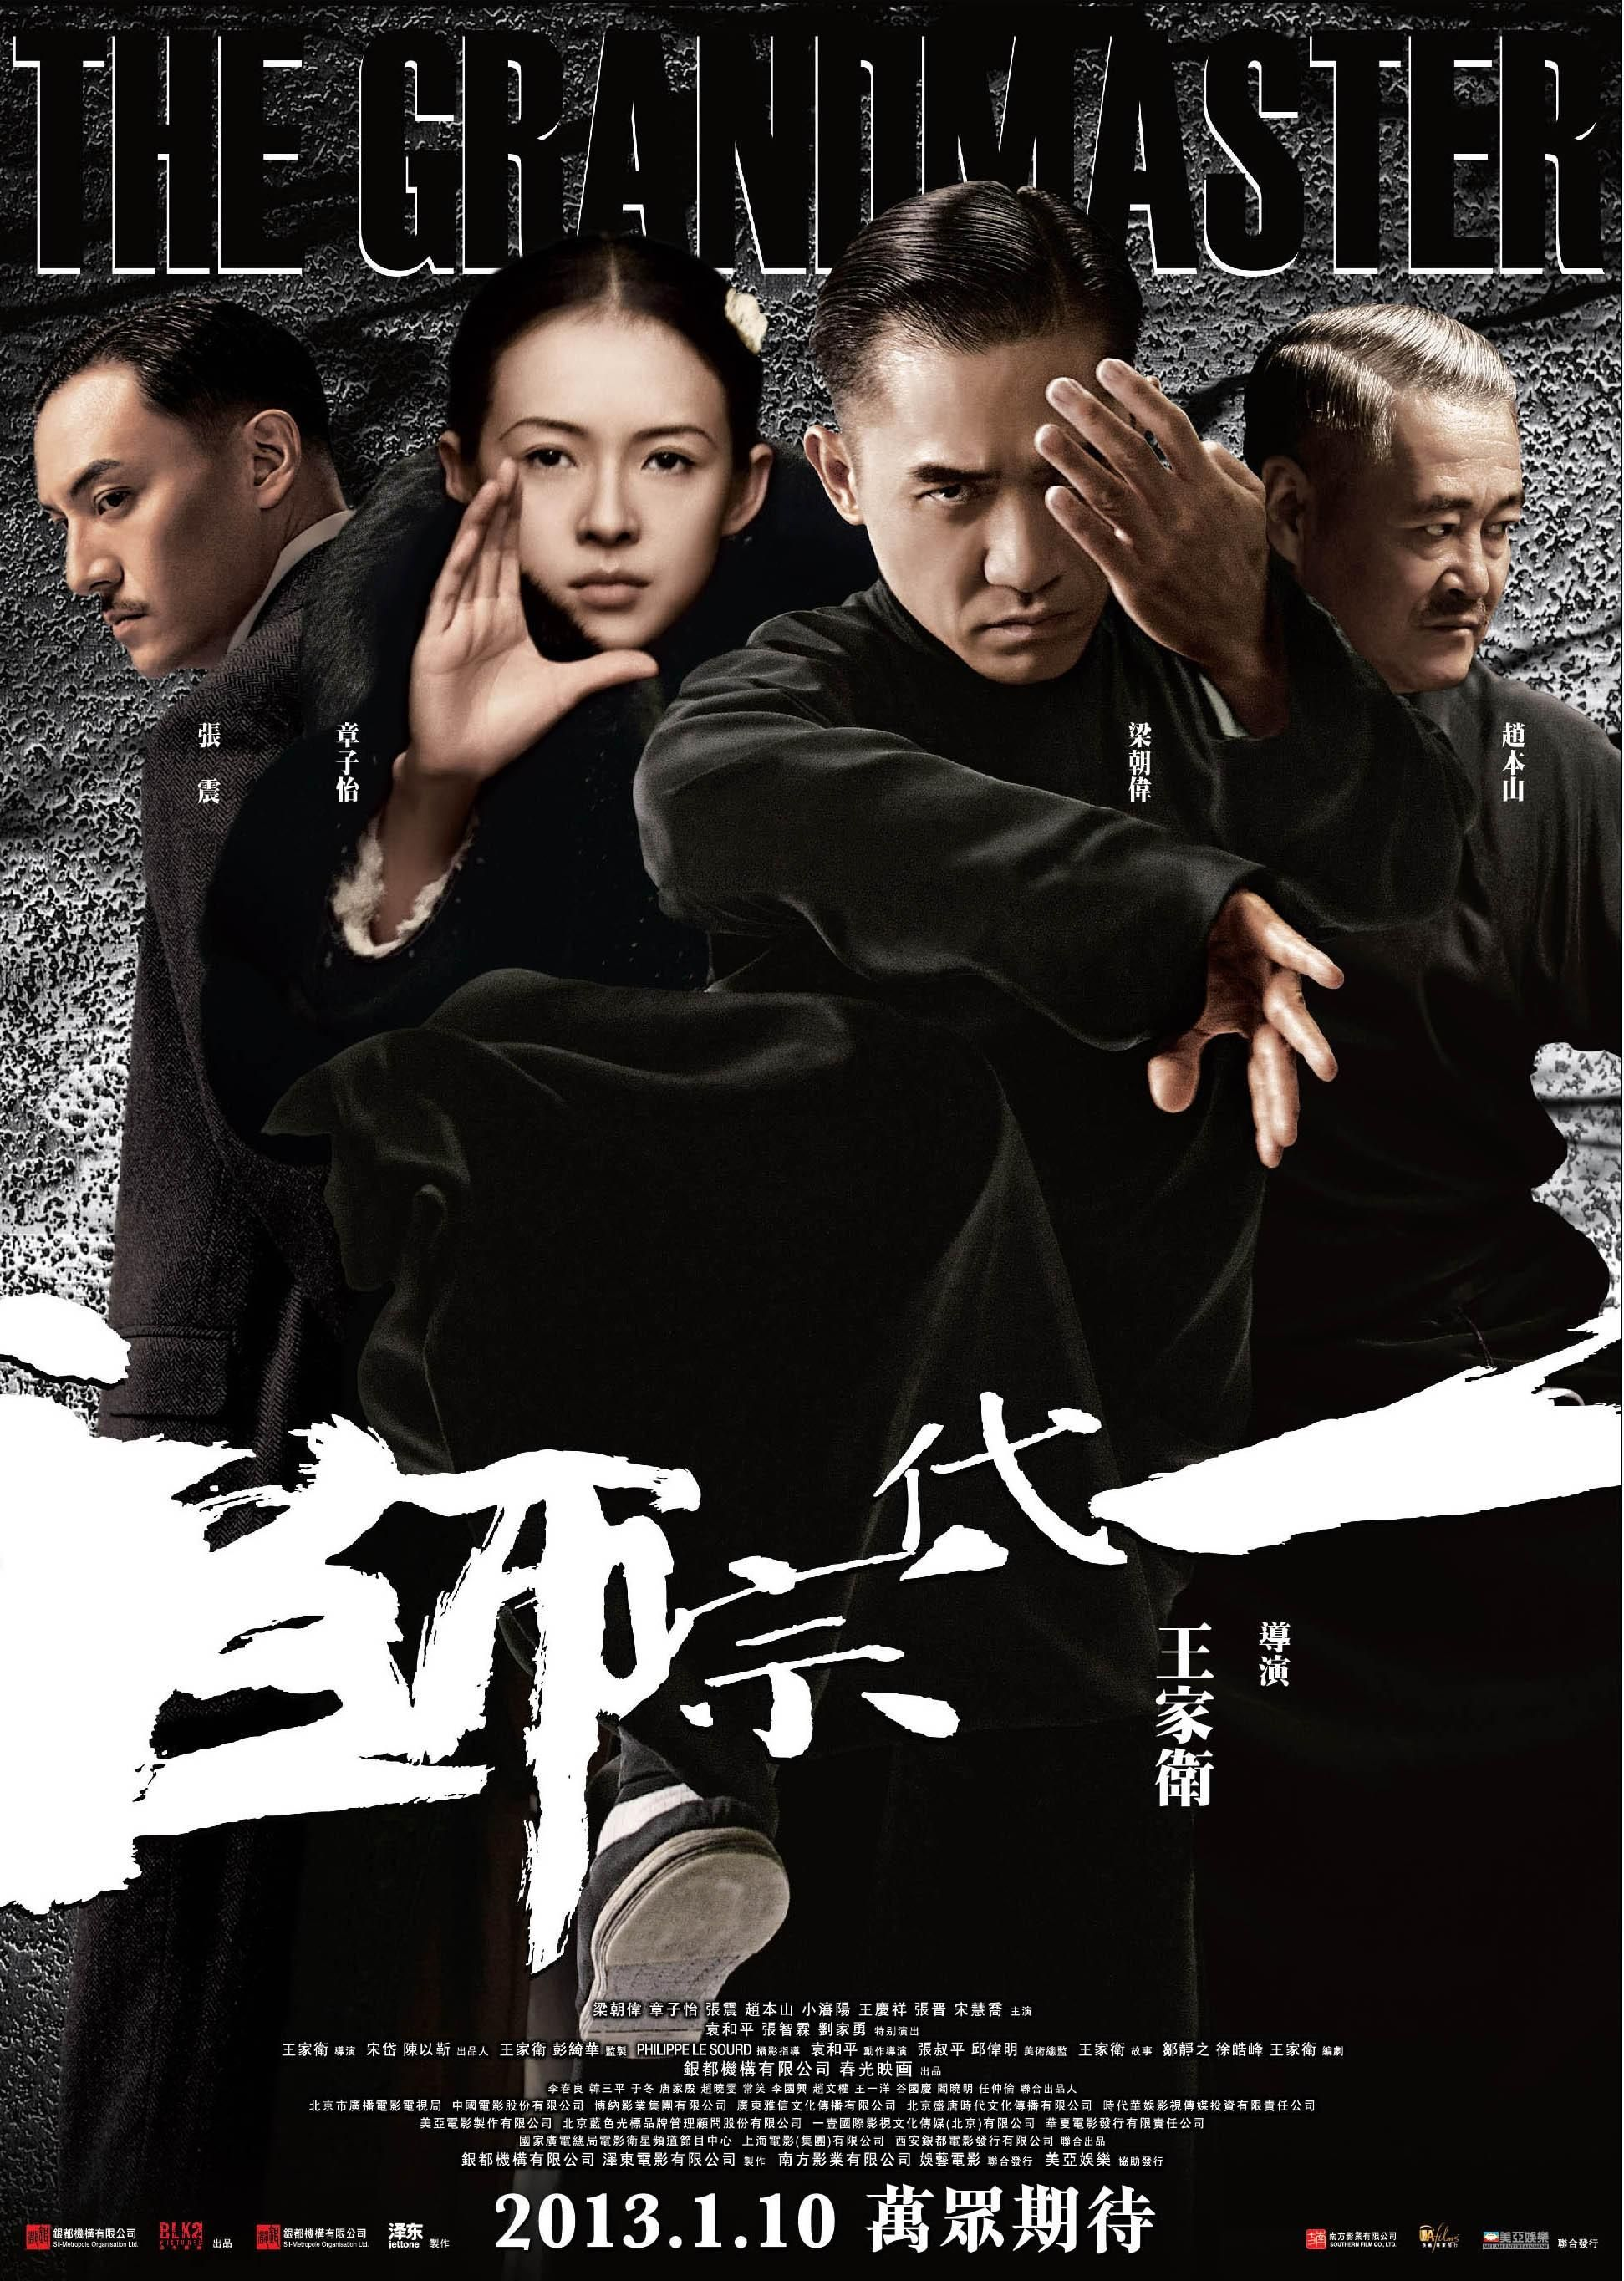 the grandmaster 2013 hindi dubbed movie download